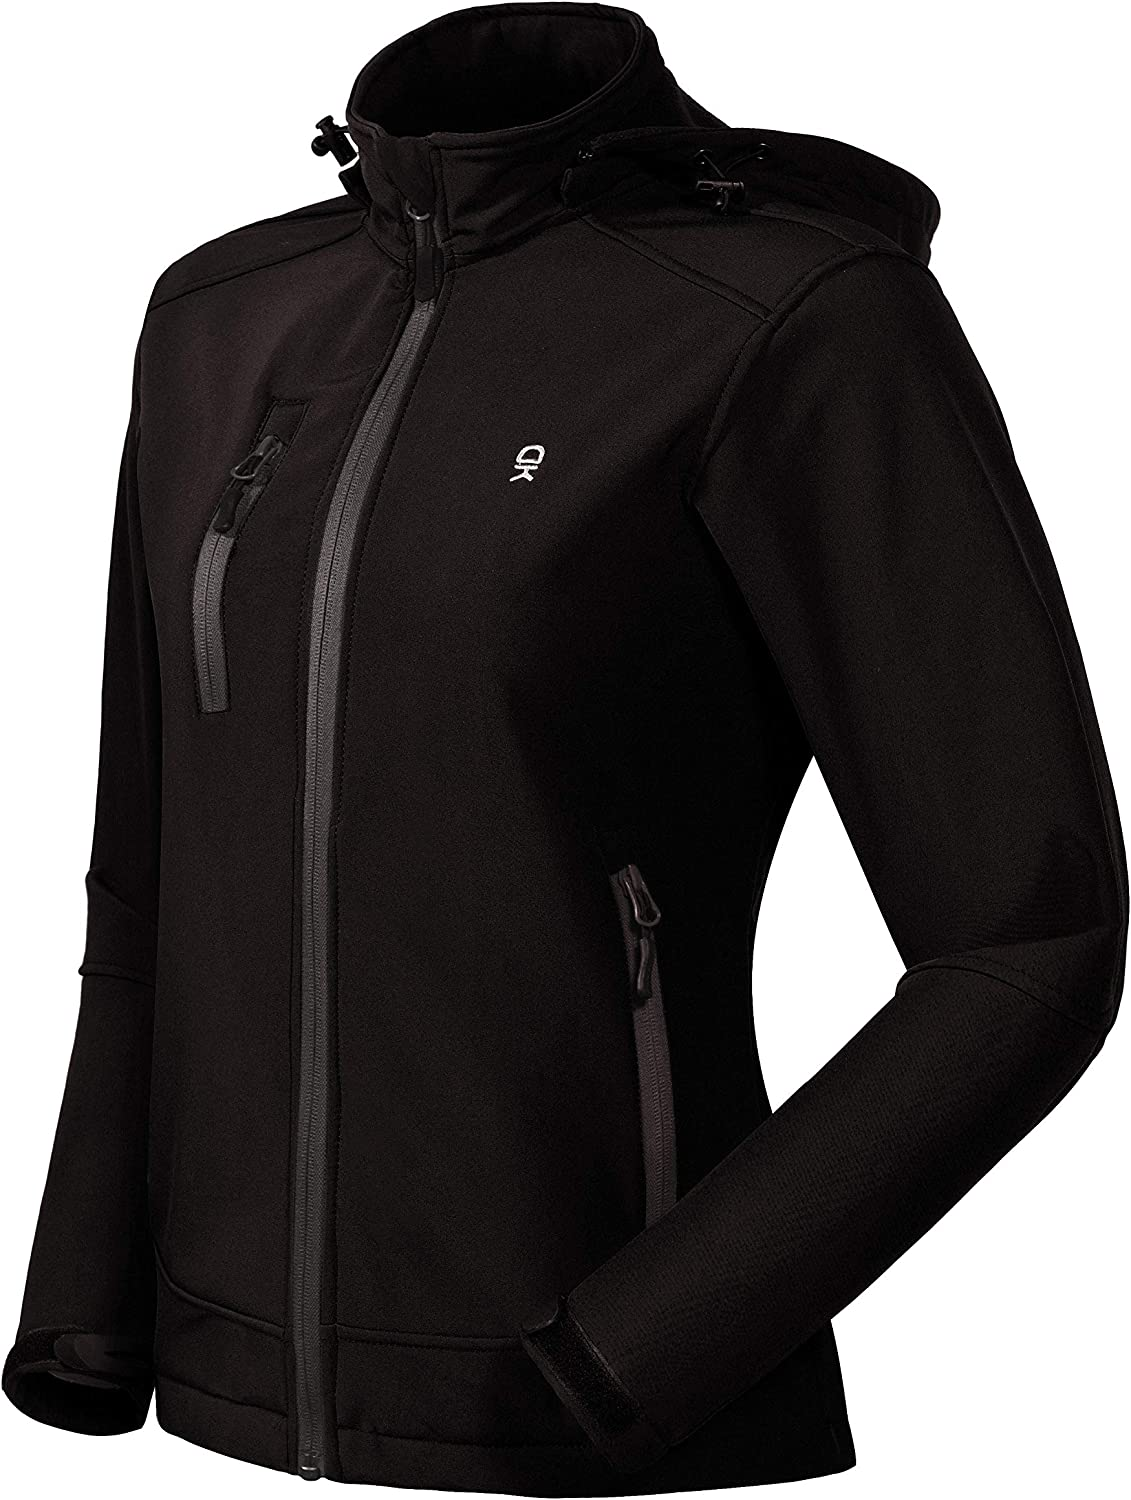 Little Donkey Andy Women's Softshell Jacket with Removable Hood, Fleece Lined and Water Repellent: Sports & Outdoors